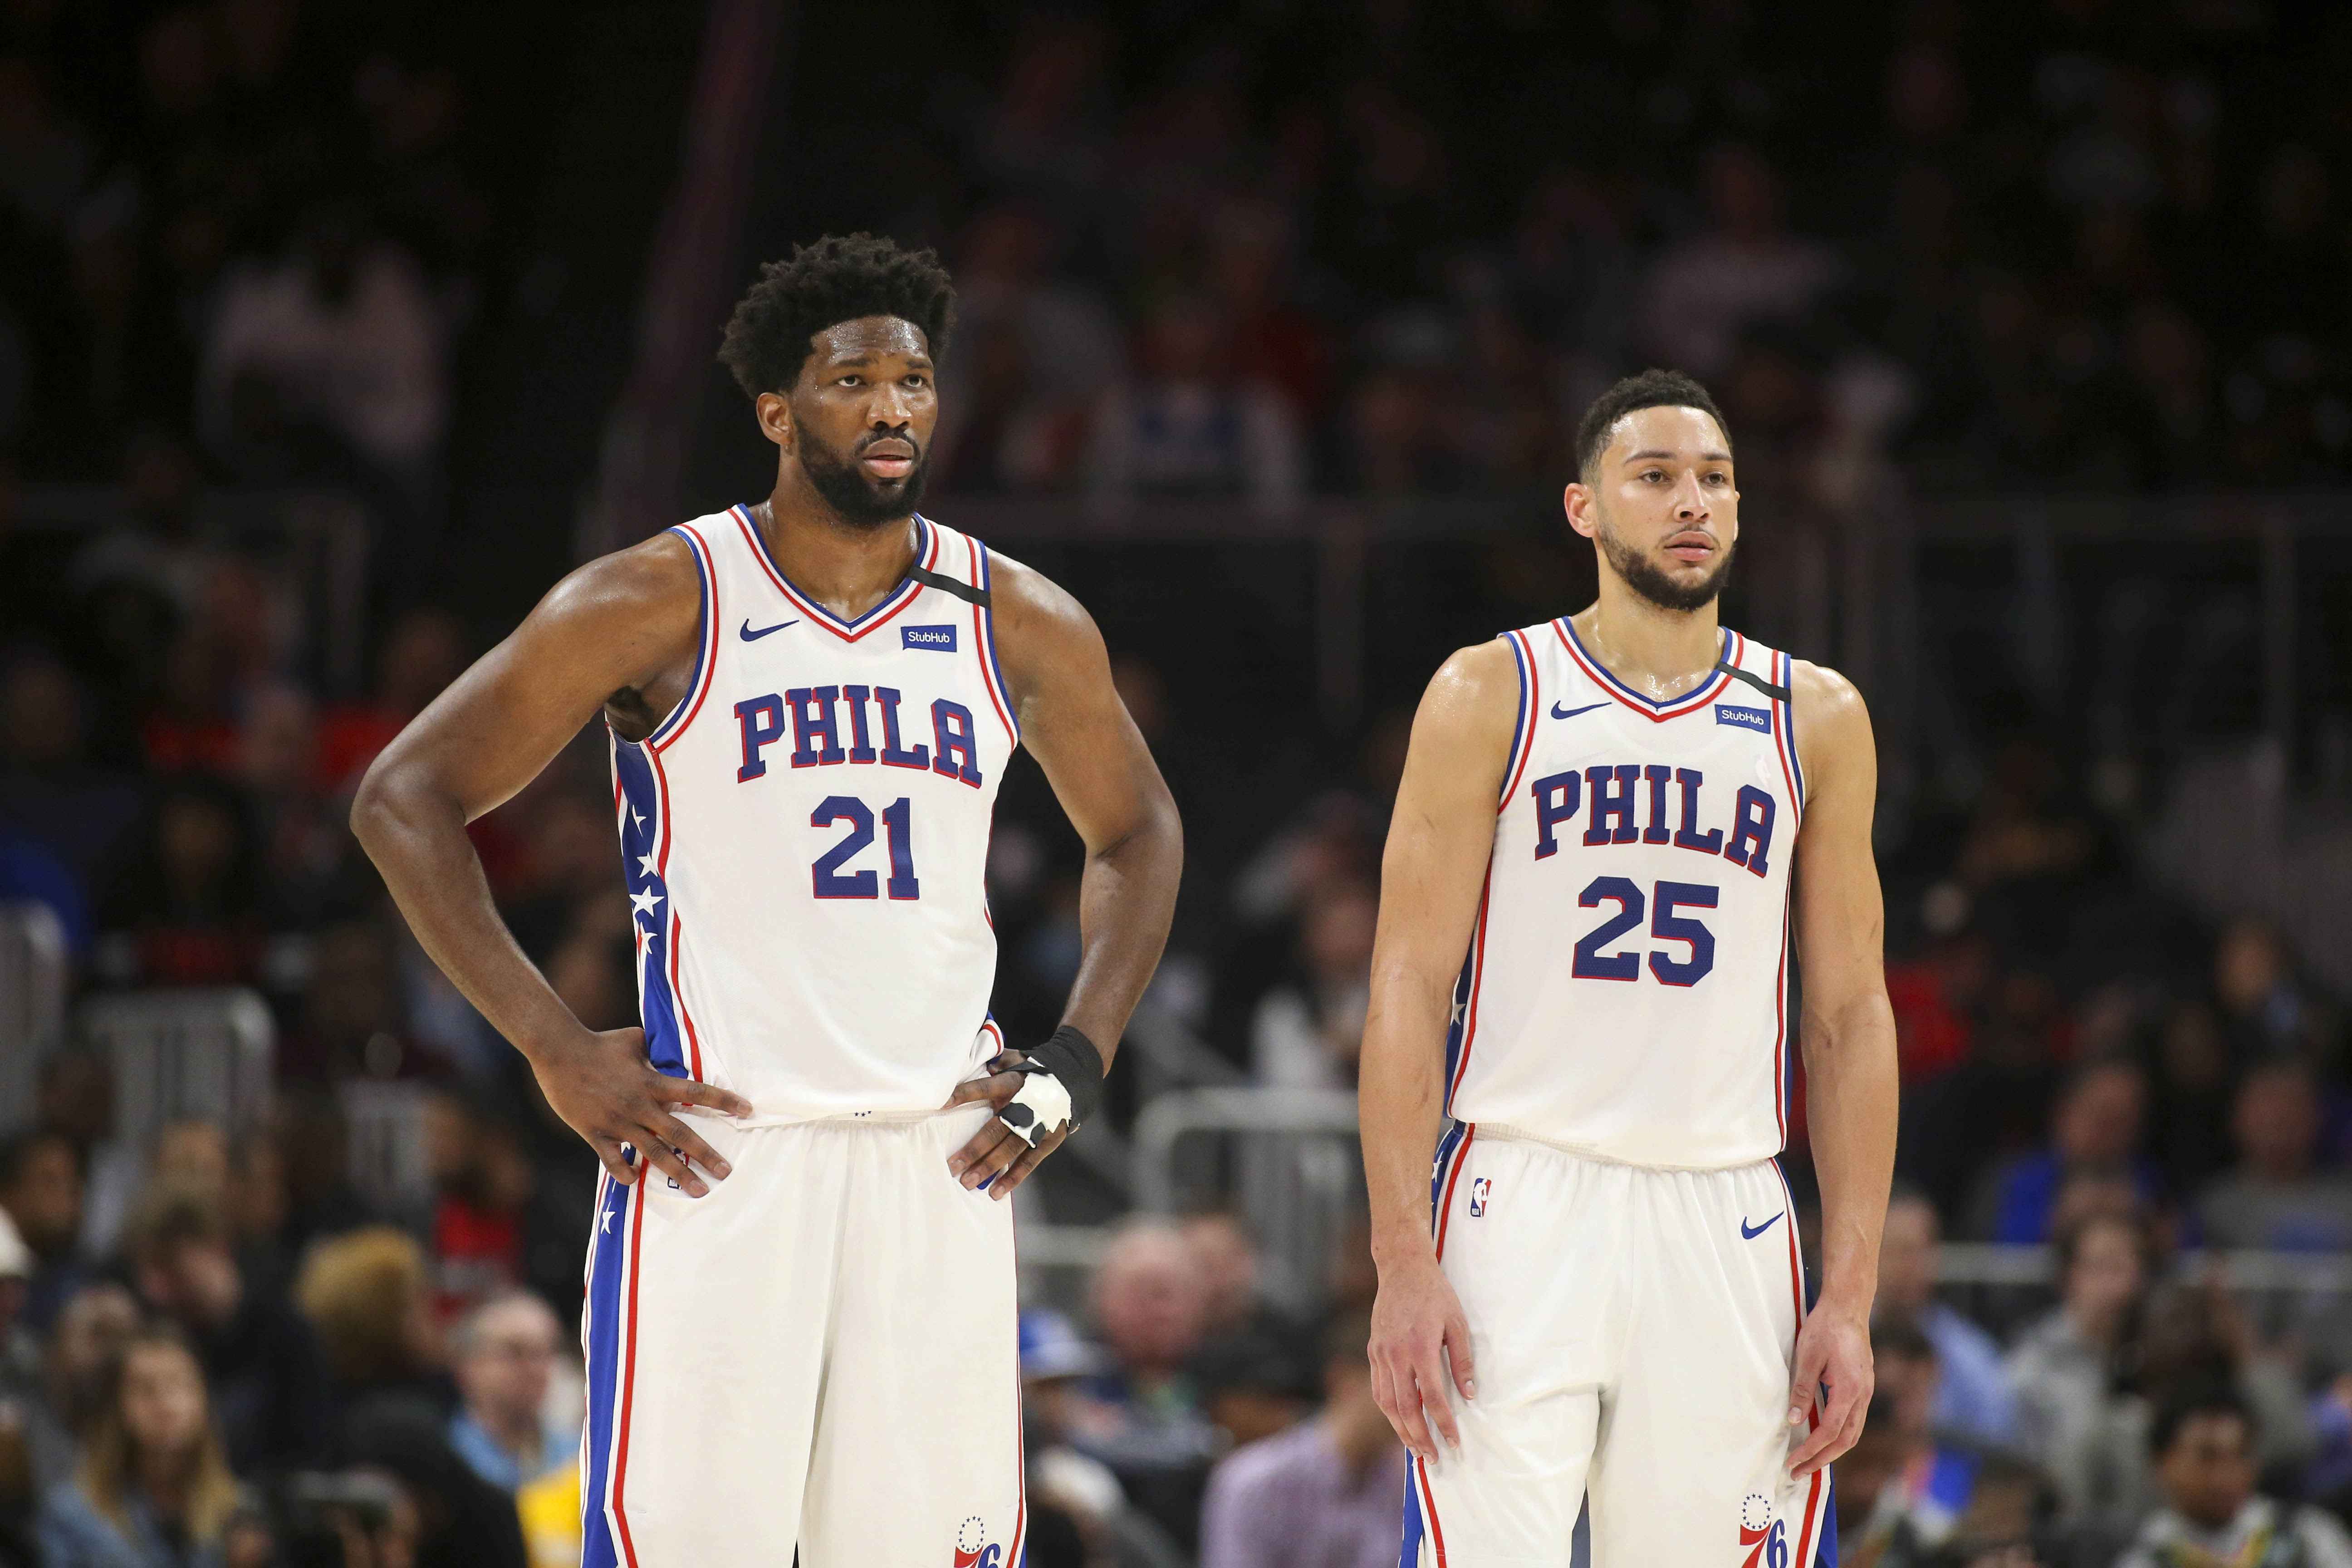 Jan 30, 2020; Atlanta, Georgia, USA; Philadelphia 76ers center Joel Embiid (21) and guard Ben Simmons (25) during a free throw against the Atlanta Hawks in the second quarter at State Farm Arena.